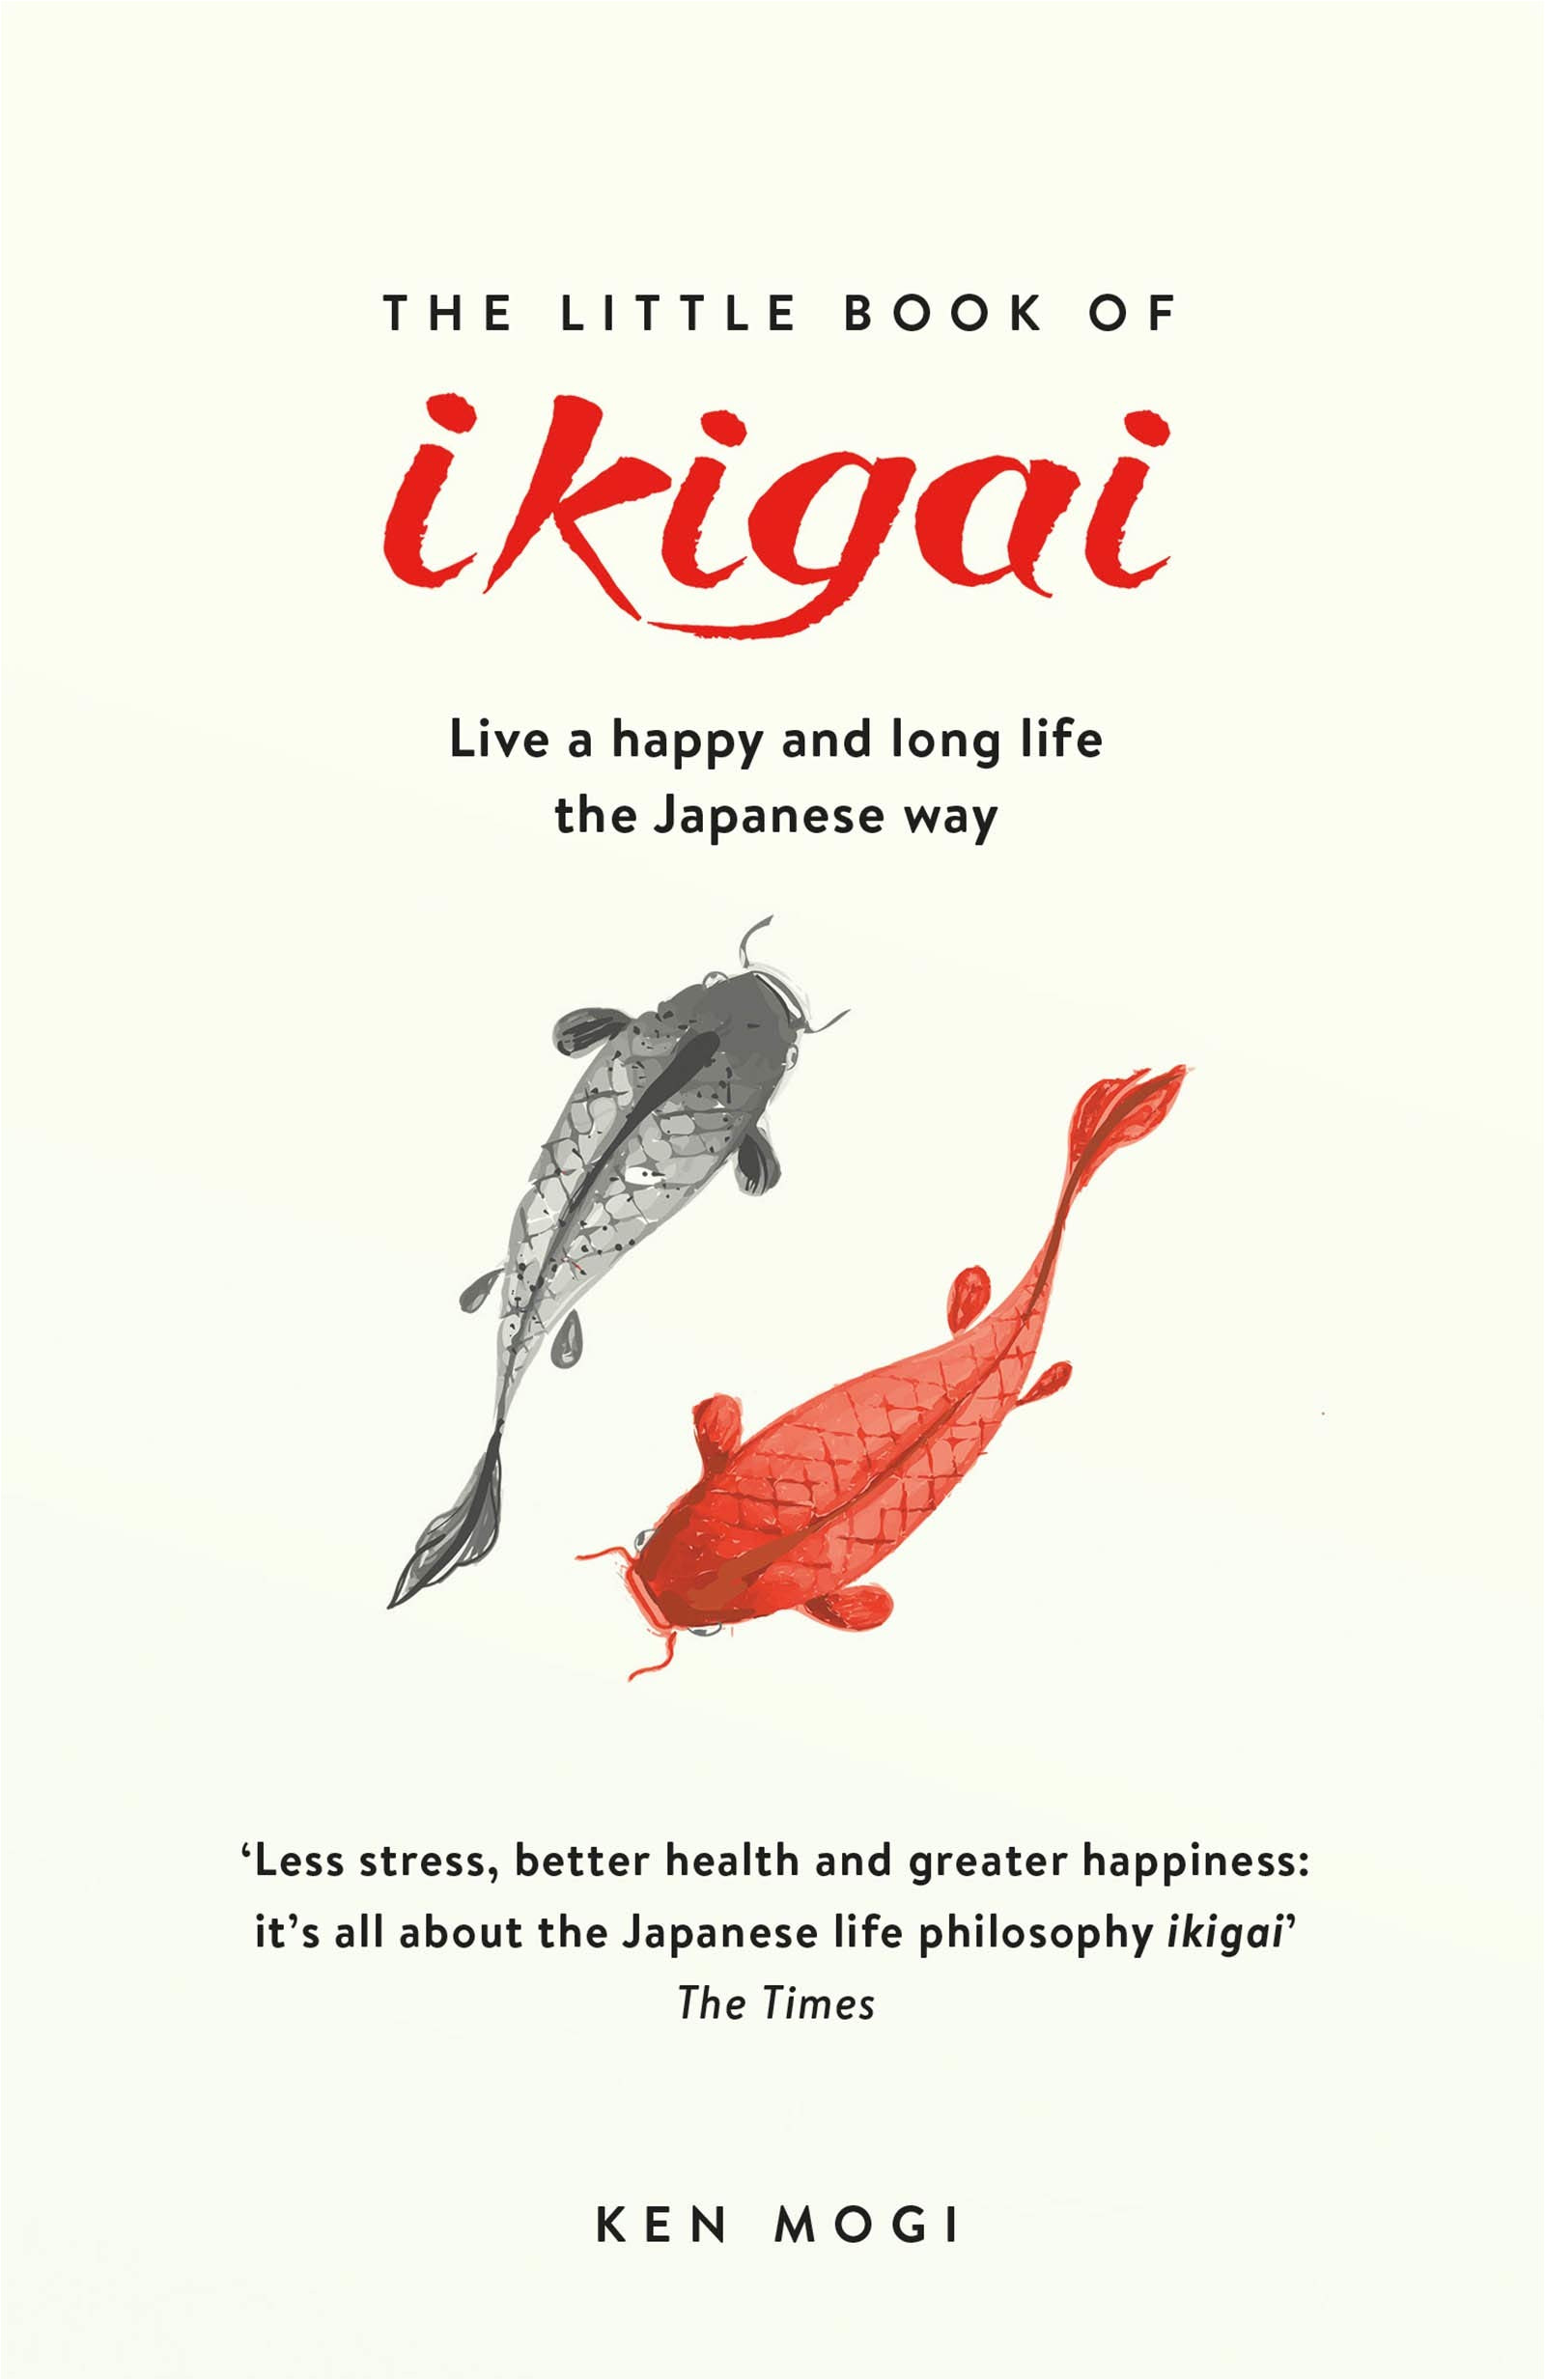 the little book of ikigai the secret japanese way to live a happy and long life amazon co uk ken mogi 9781787470279 books